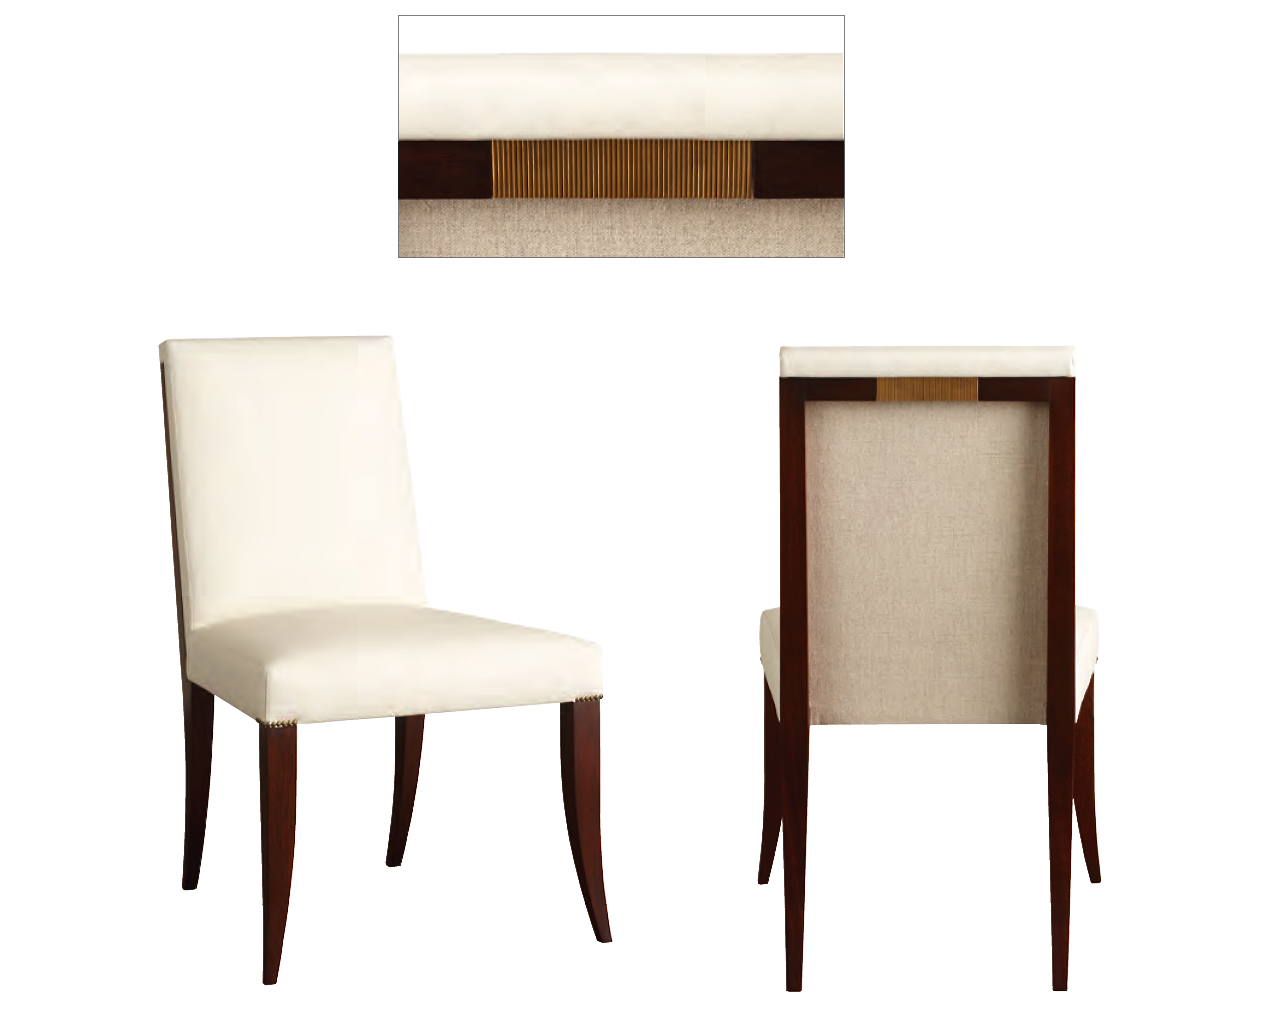 Baker Tufted Dining Chairs Houses Gardens People Dallas Design News Early Summer 2012